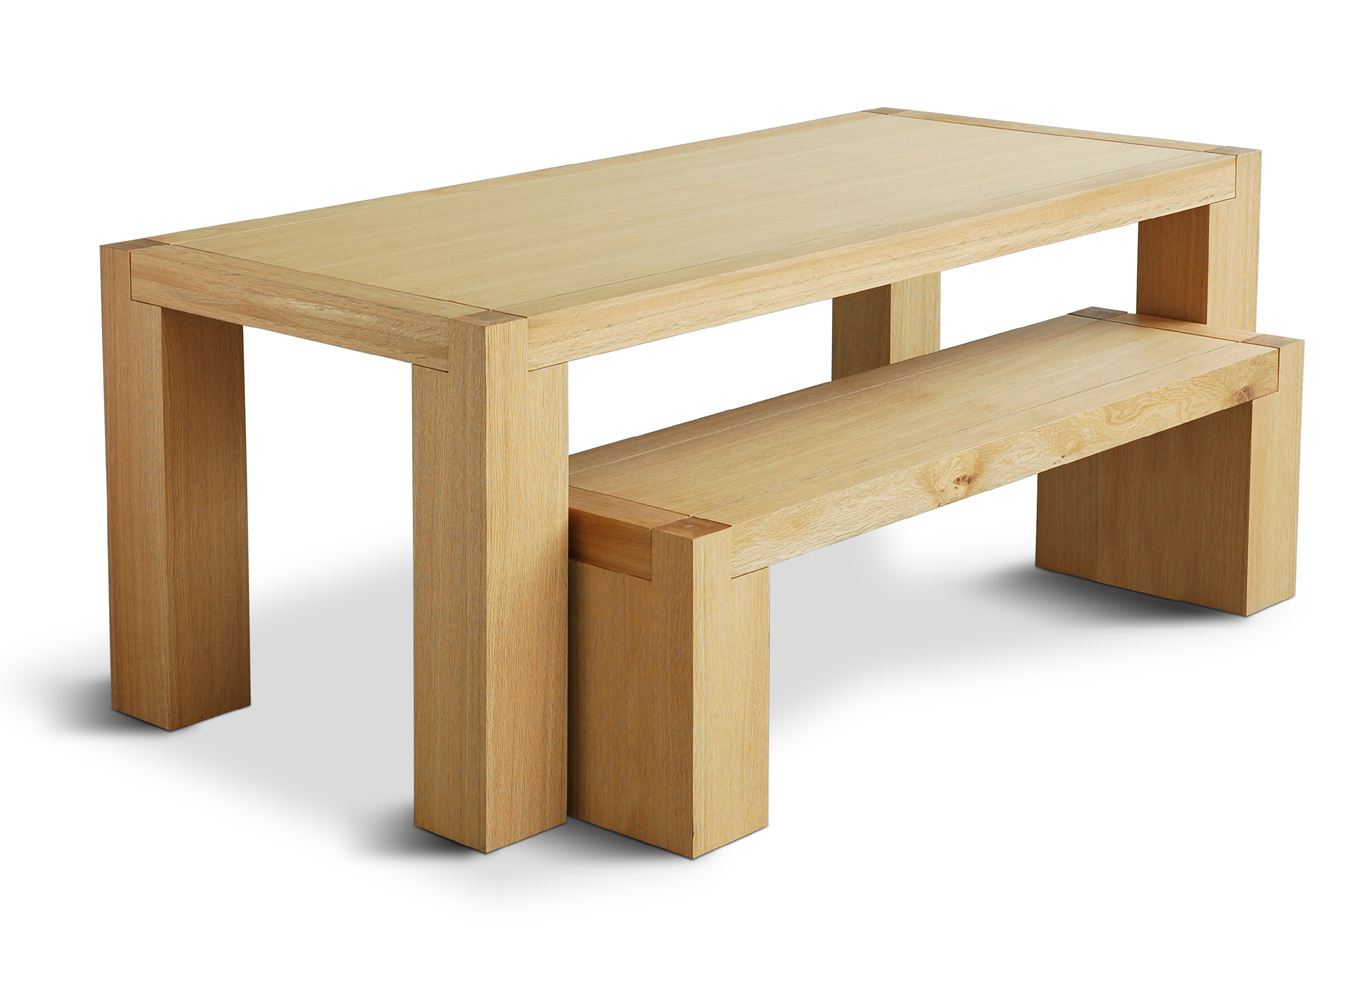 Gus modern chunk dining table bench for Dining table with bench